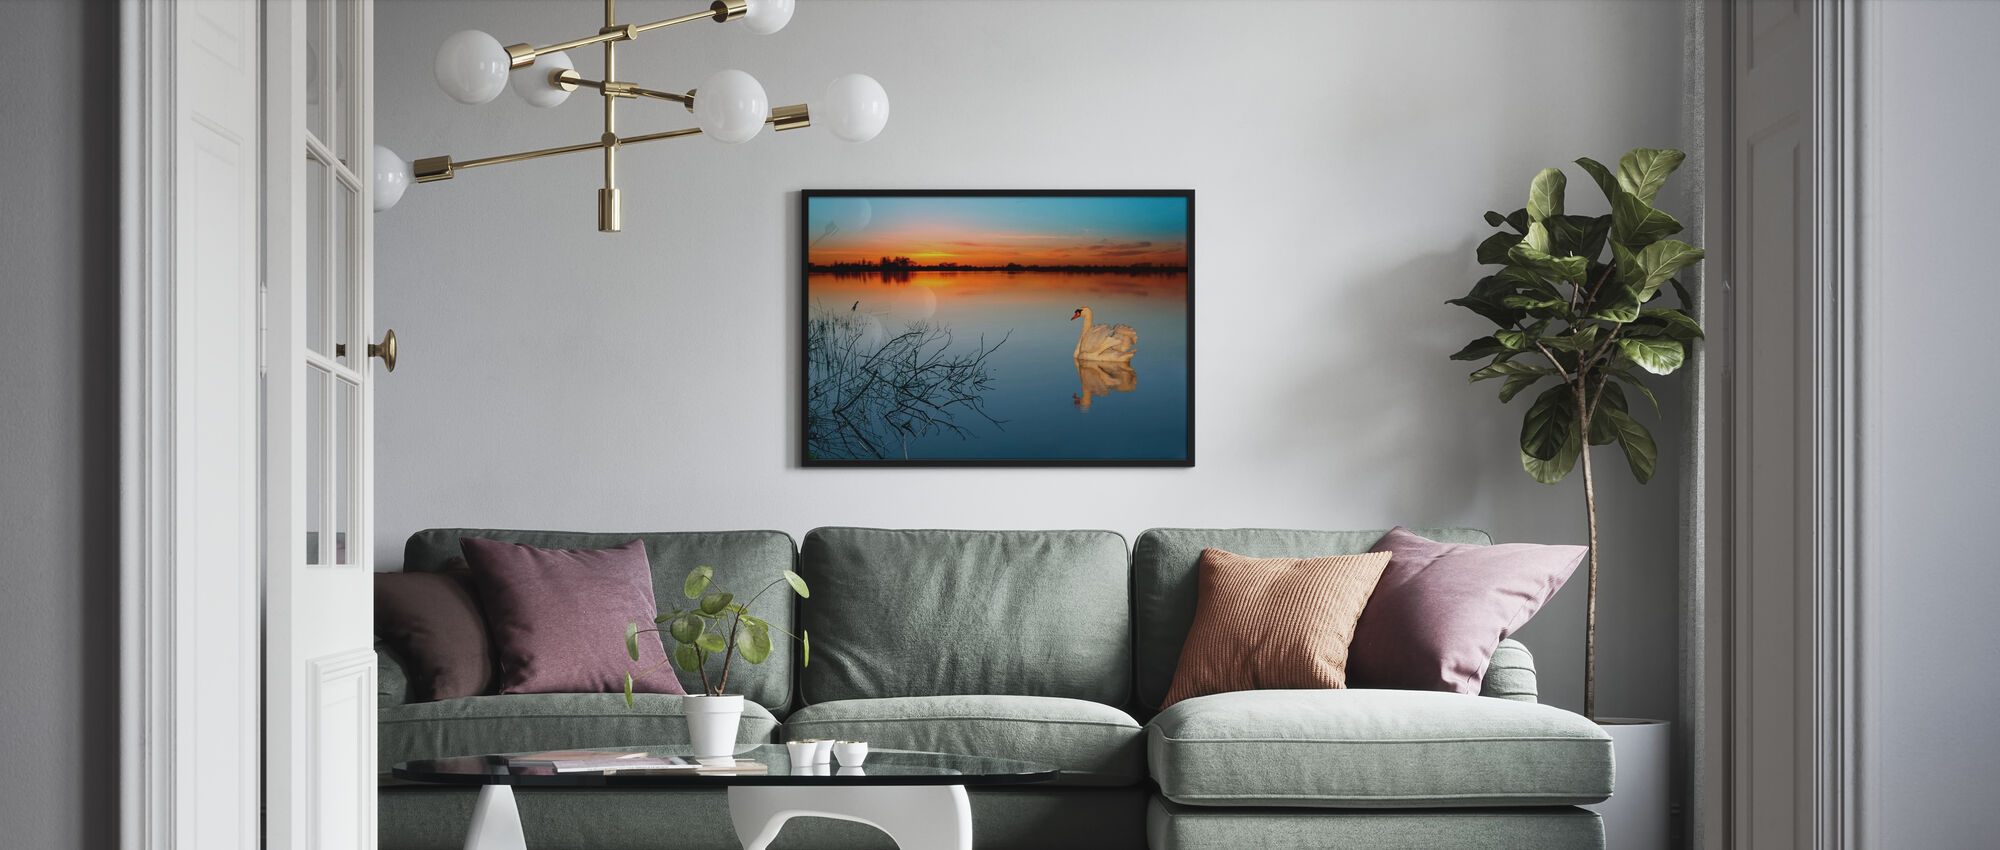 Swan on a lake - Poster - Living Room